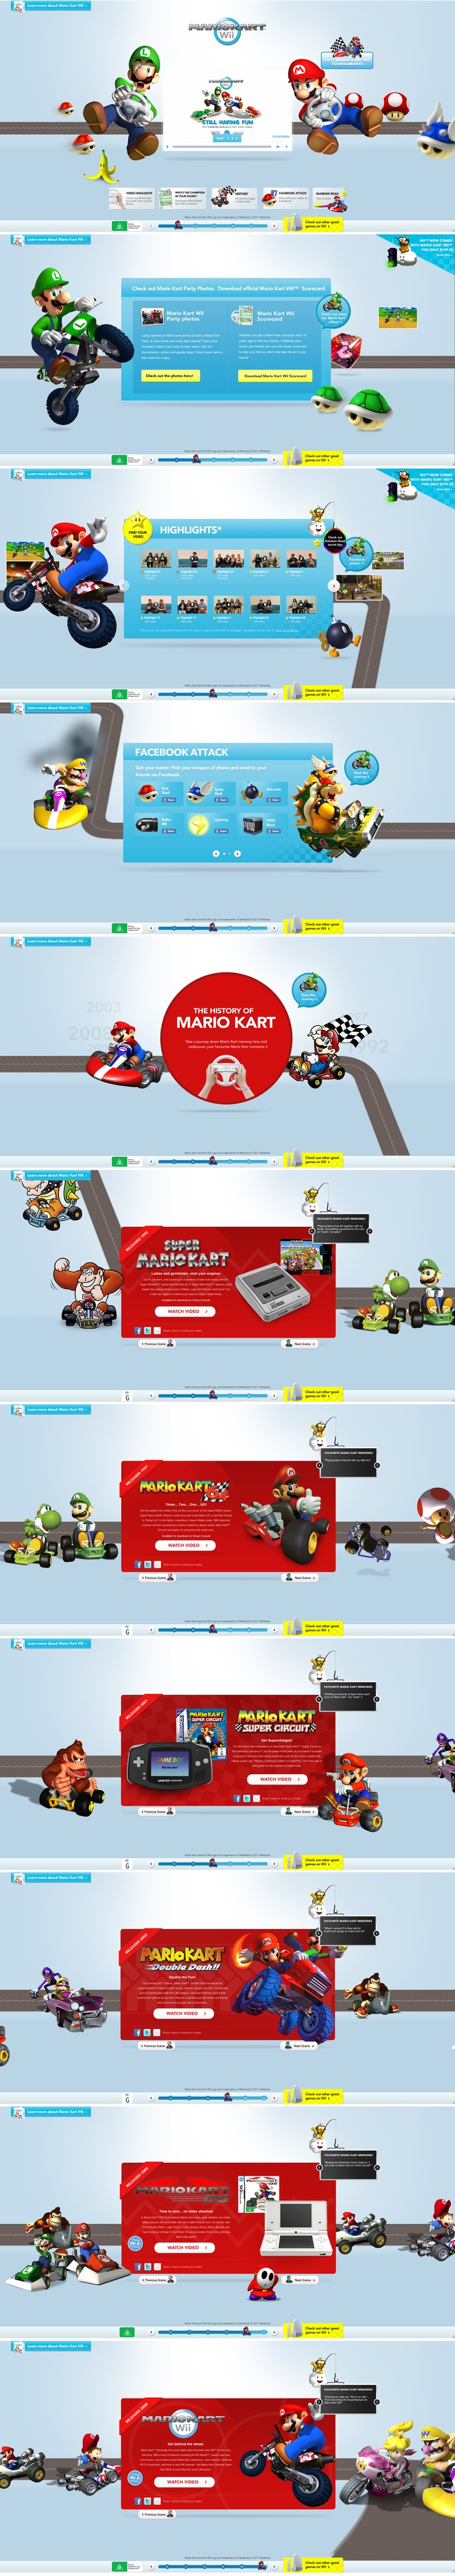 Mario Kart Wii by Nintendo #web design scrolling experience